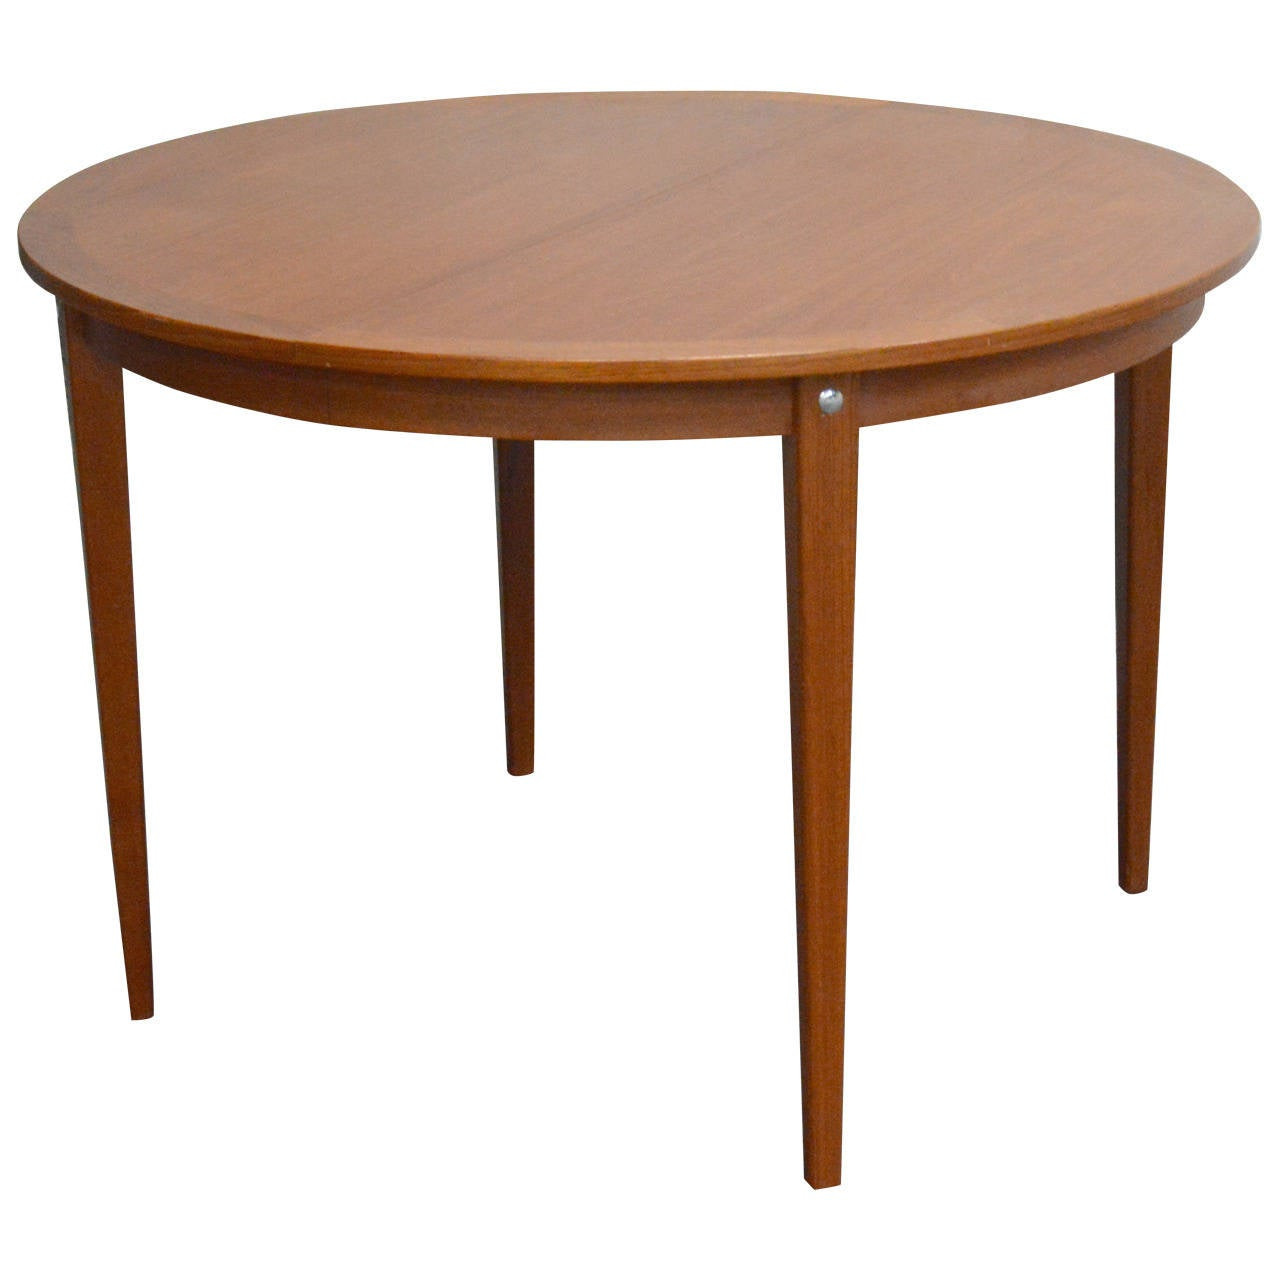 Best ideas about Mid Century Modern Round Dining Table . Save or Pin Mid Century Modern Round Swedish Teak Dining Table at 1stdibs Now.